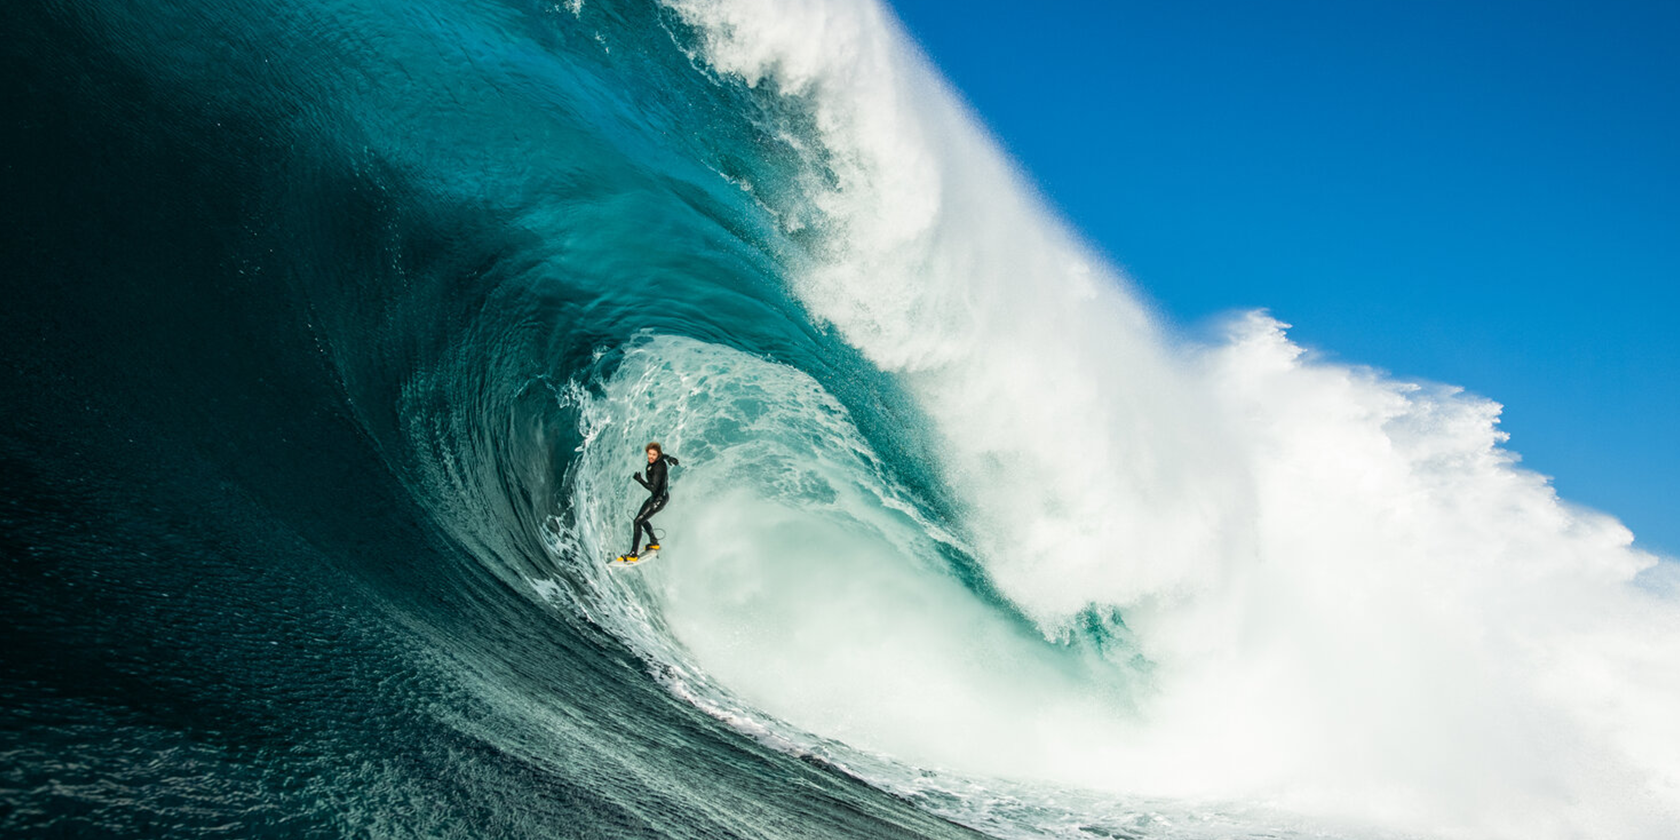 Nikon Australia Announces Winners of 2021 Surf Photo and Video of the Year Awards